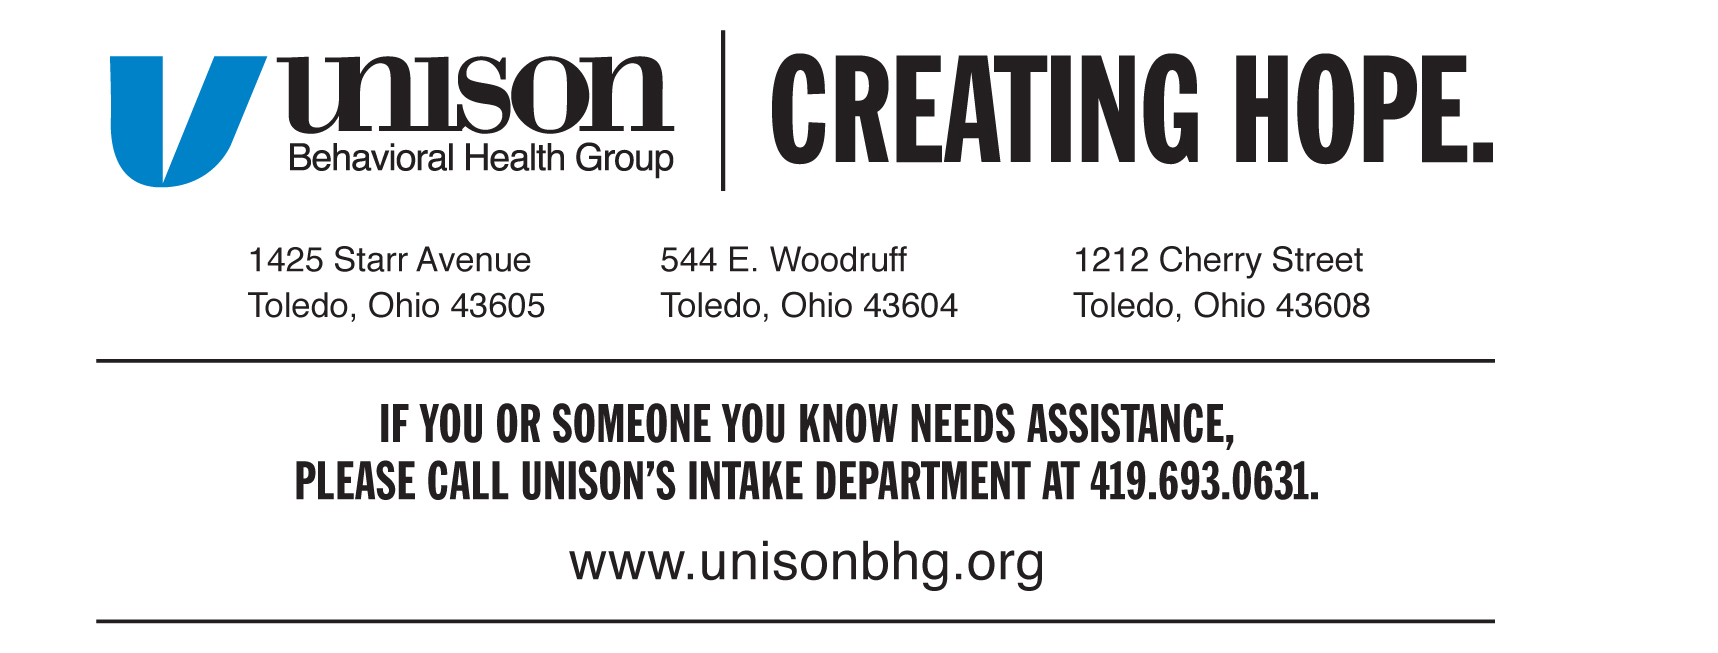 Unison Behavioral Health Group